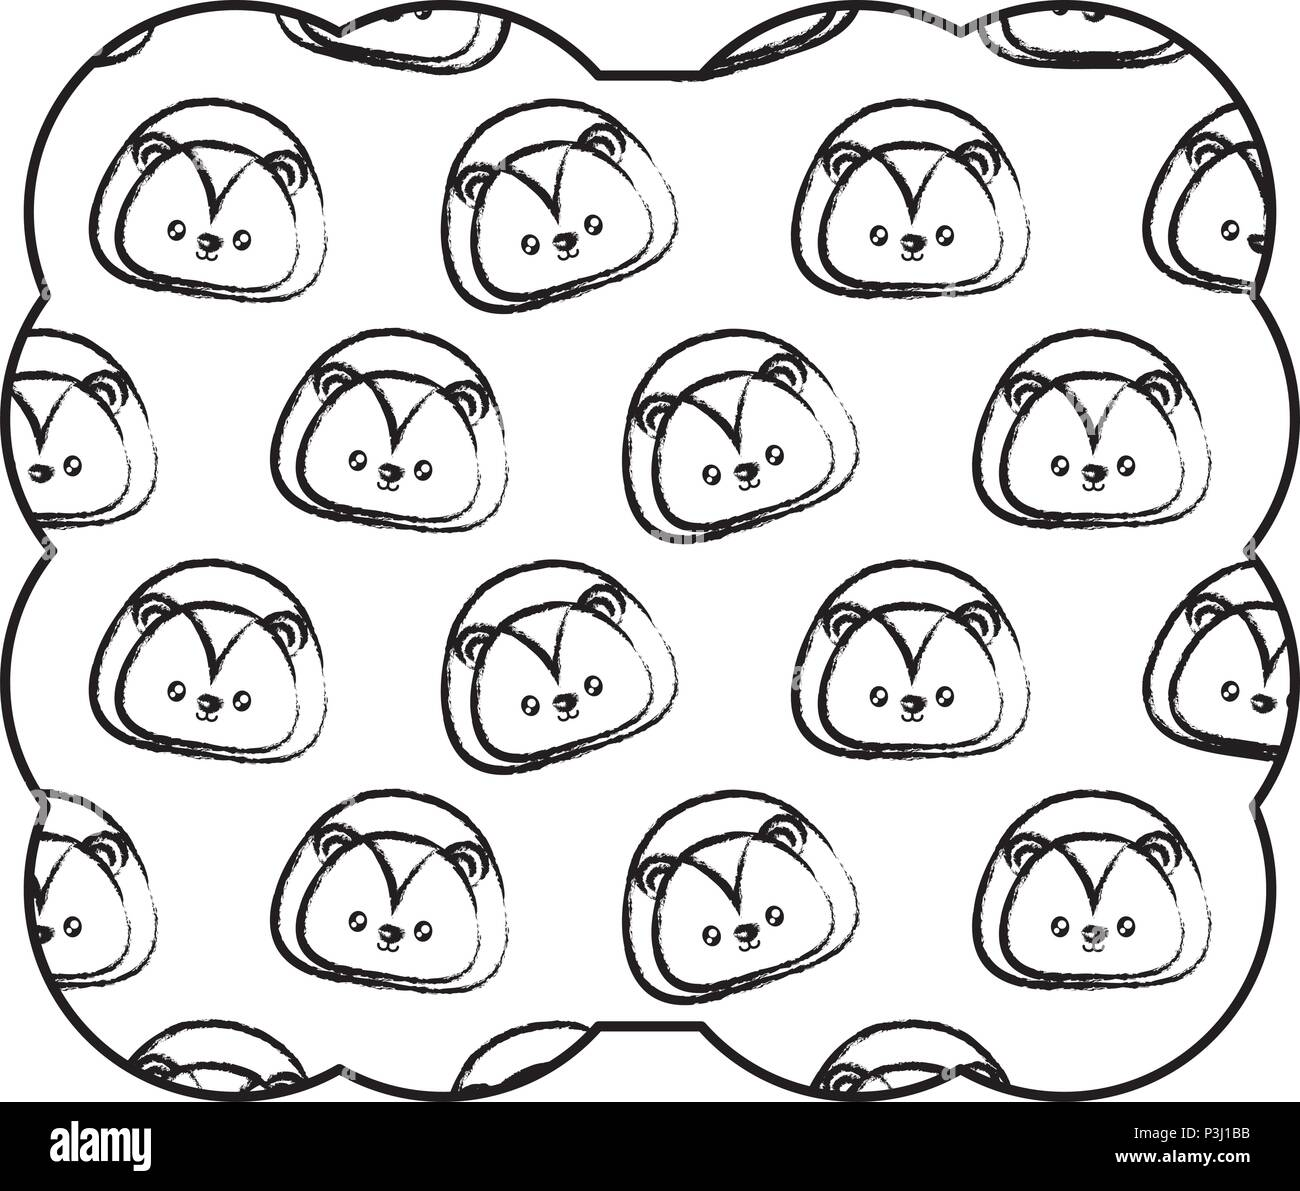 eyes lion black and white stock photos images page 2 alamy Japan Eyeglass Frames decorative frame with cute lion pattern over white background vector illustration stock image